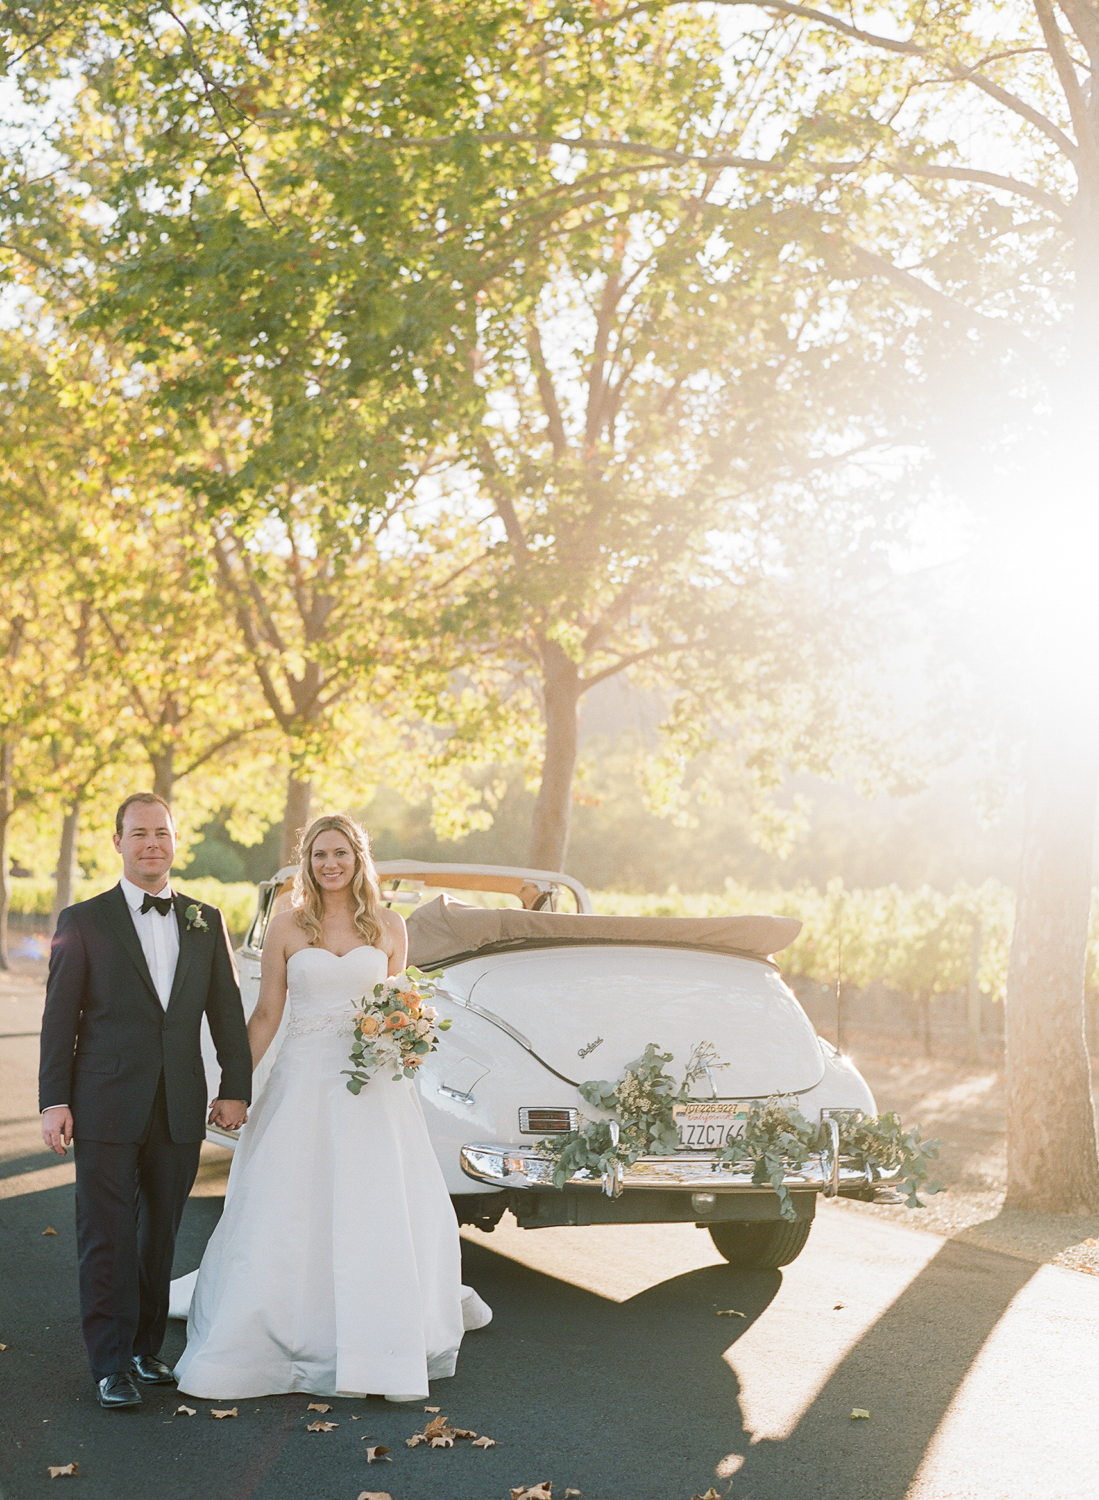 Bride and groom walk hand in hand by a vintage getaway car in Beaulieu Gardens; Sylvie Gil Photography